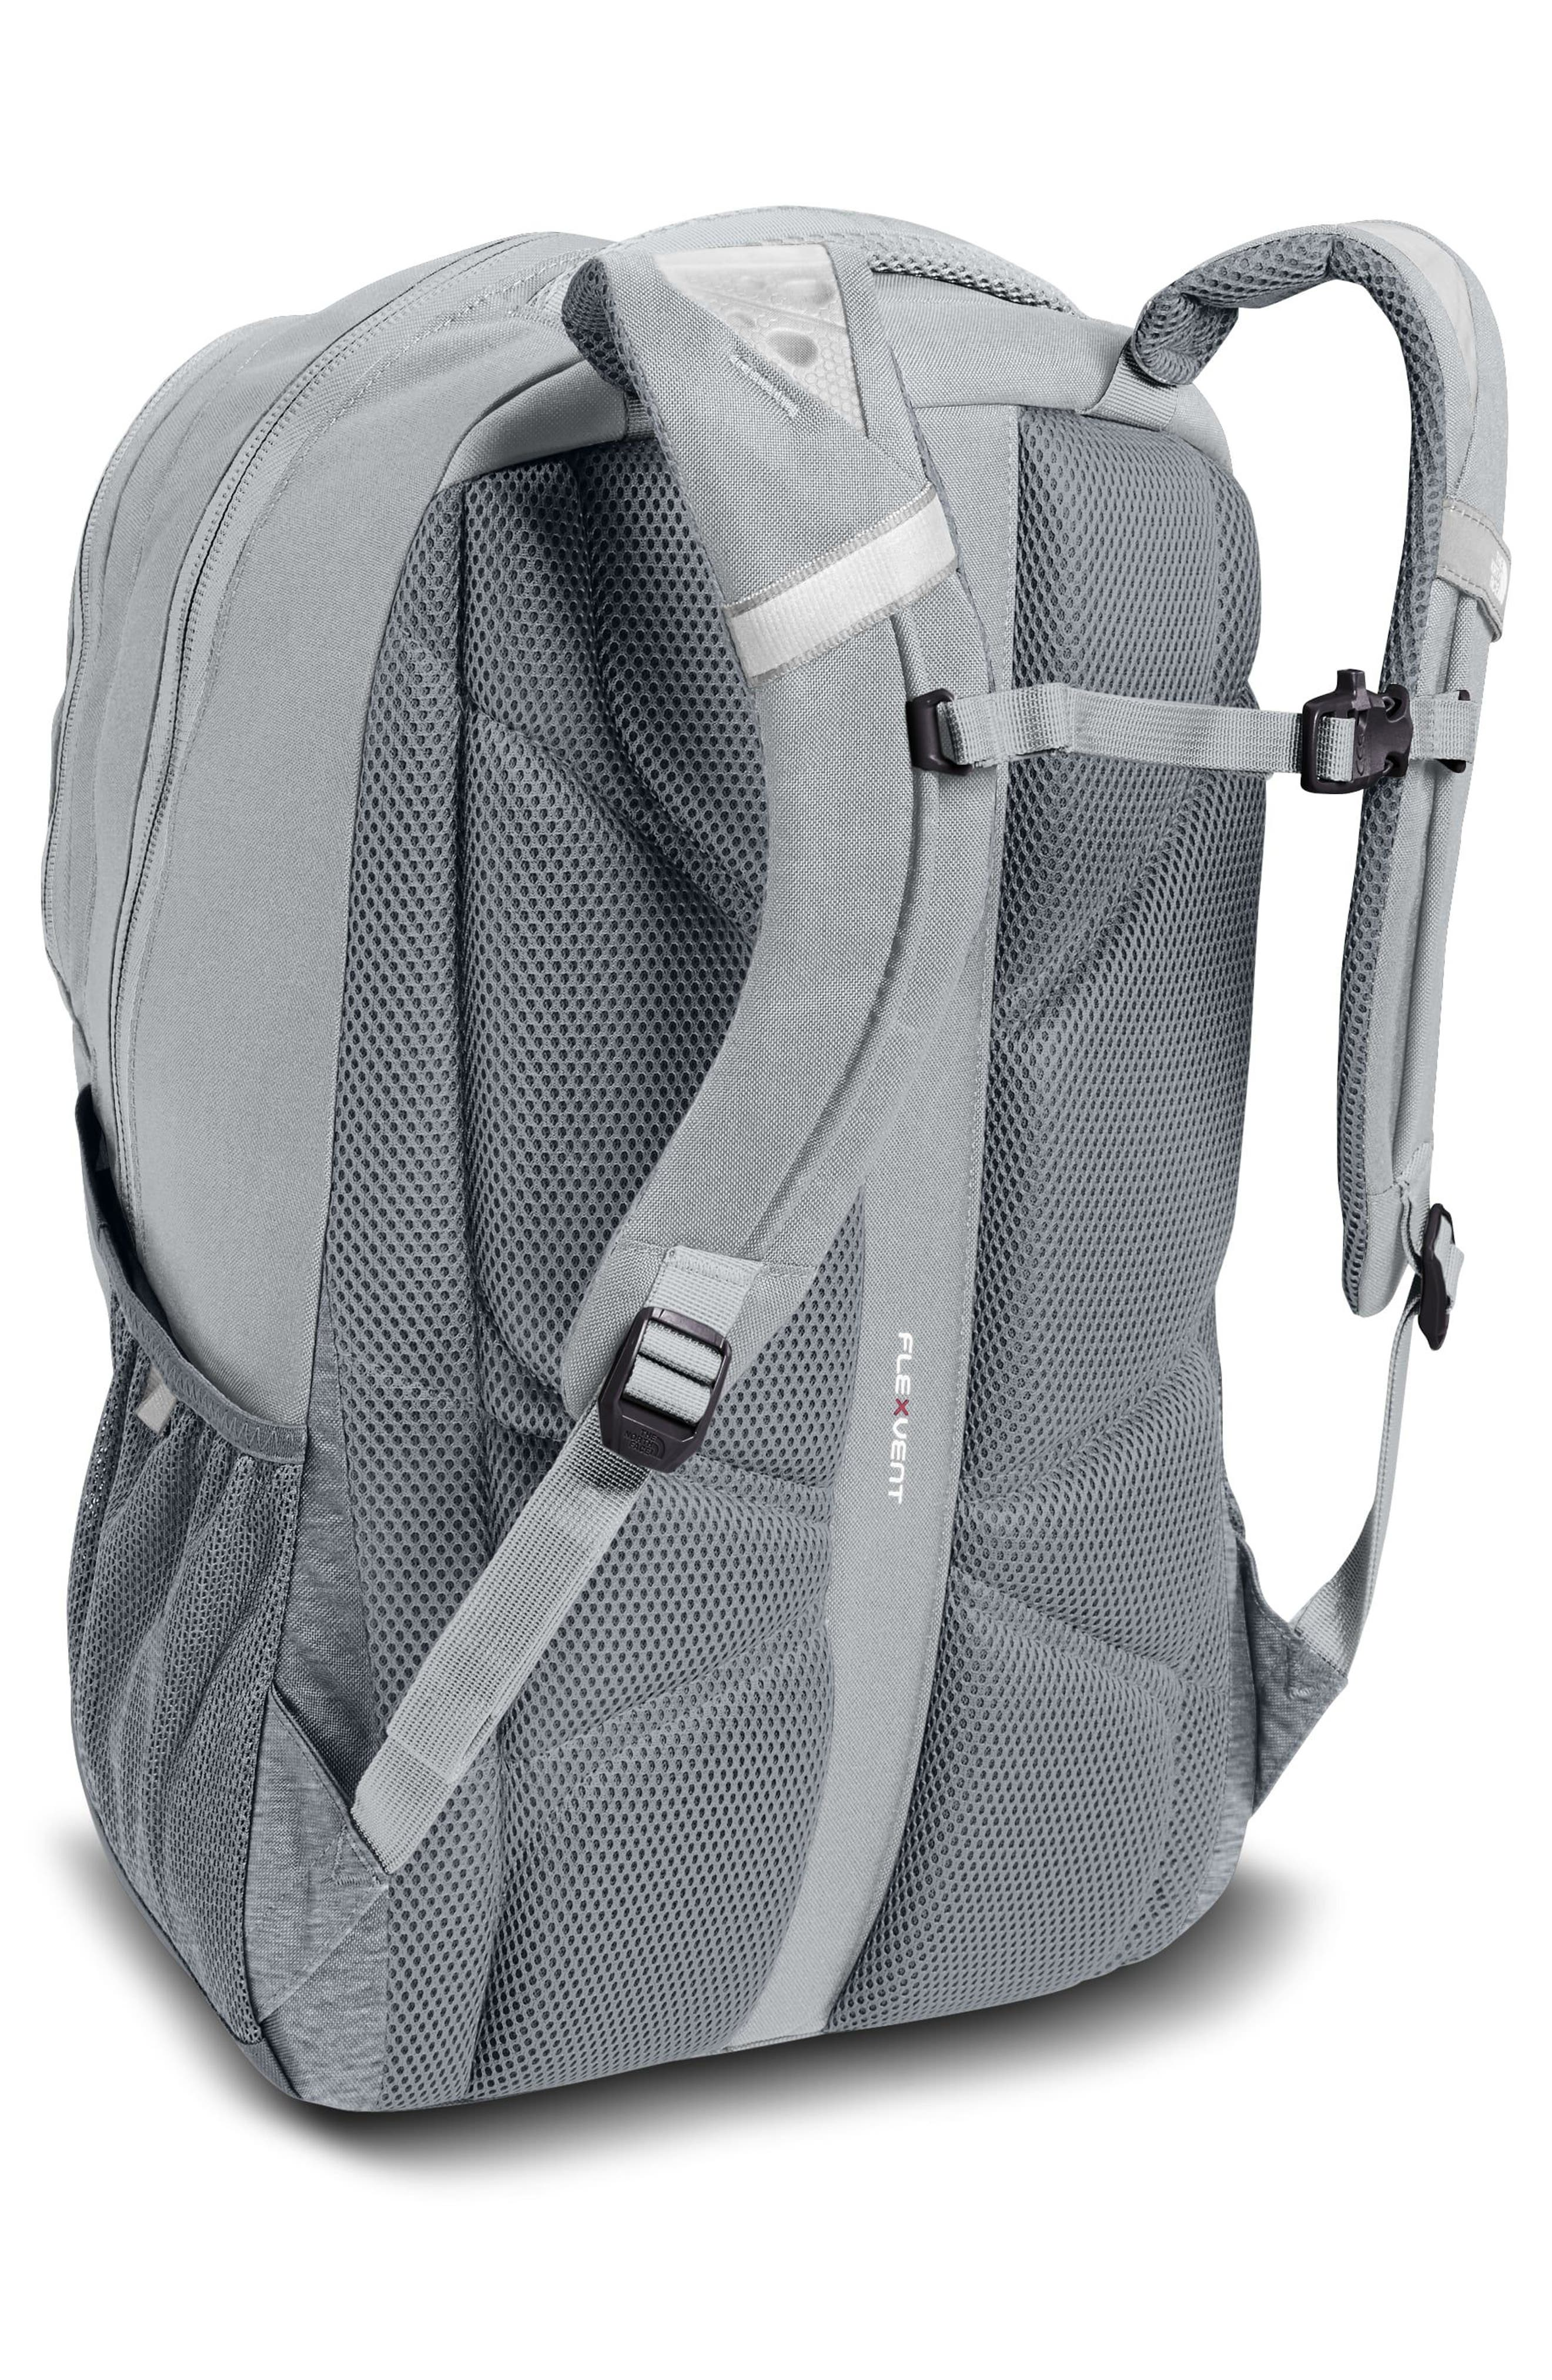 Jester Backpack,                             Alternate thumbnail 2, color,                             Grey Dark Hther/High Rise Grey